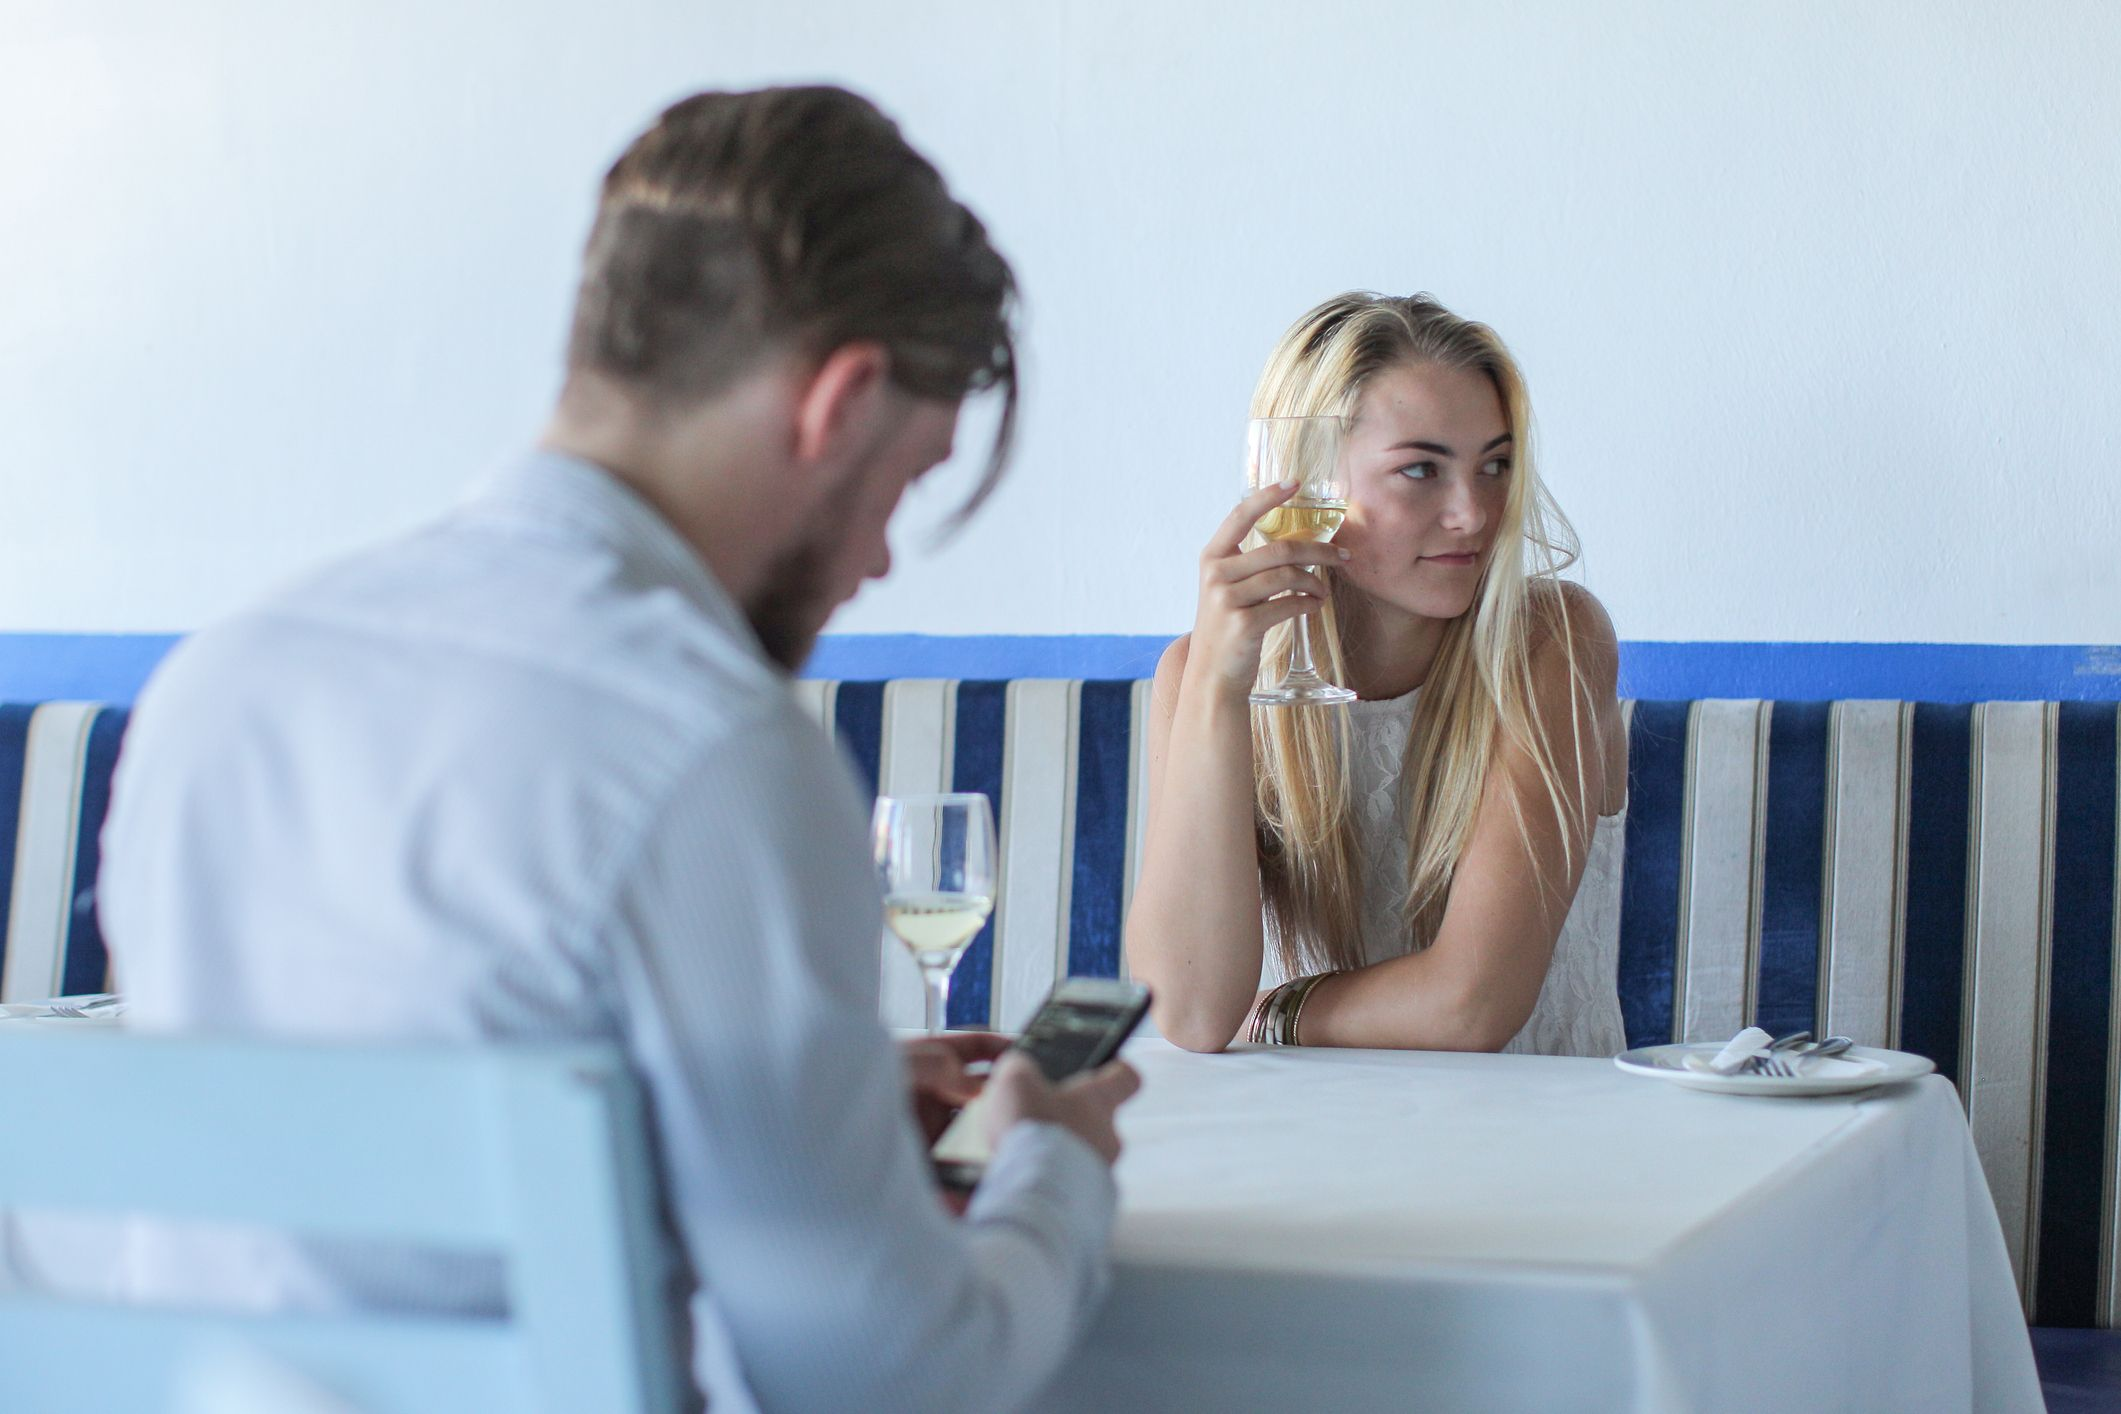 These Are Some of the Most Common First Date Dealbreakers